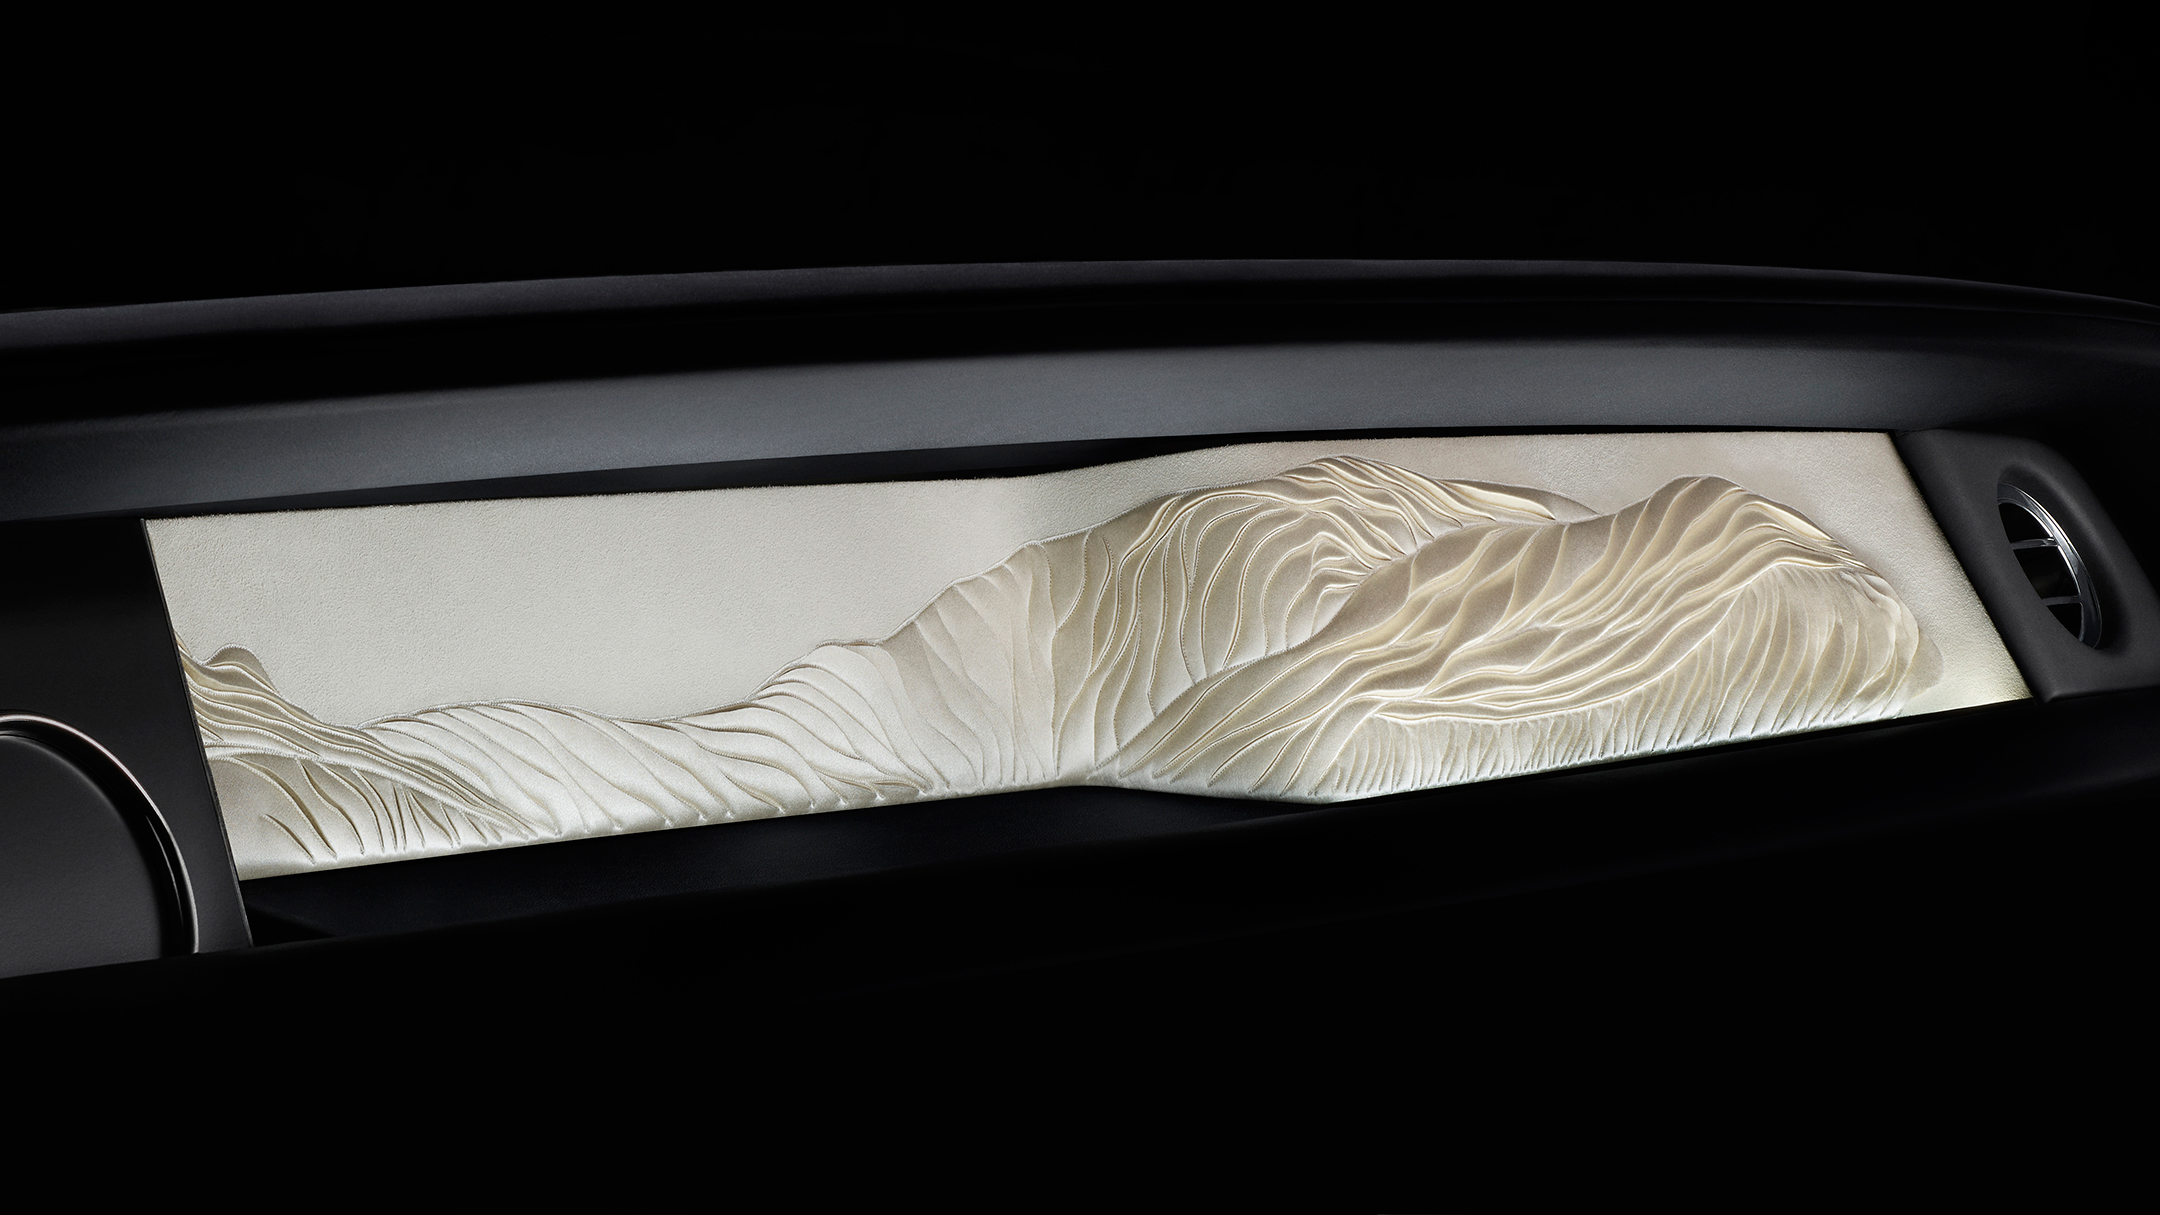 Rolls-Royce Phantom - 2017 - The Gallery - Helen Amy Murray - Art - Whispered Muse